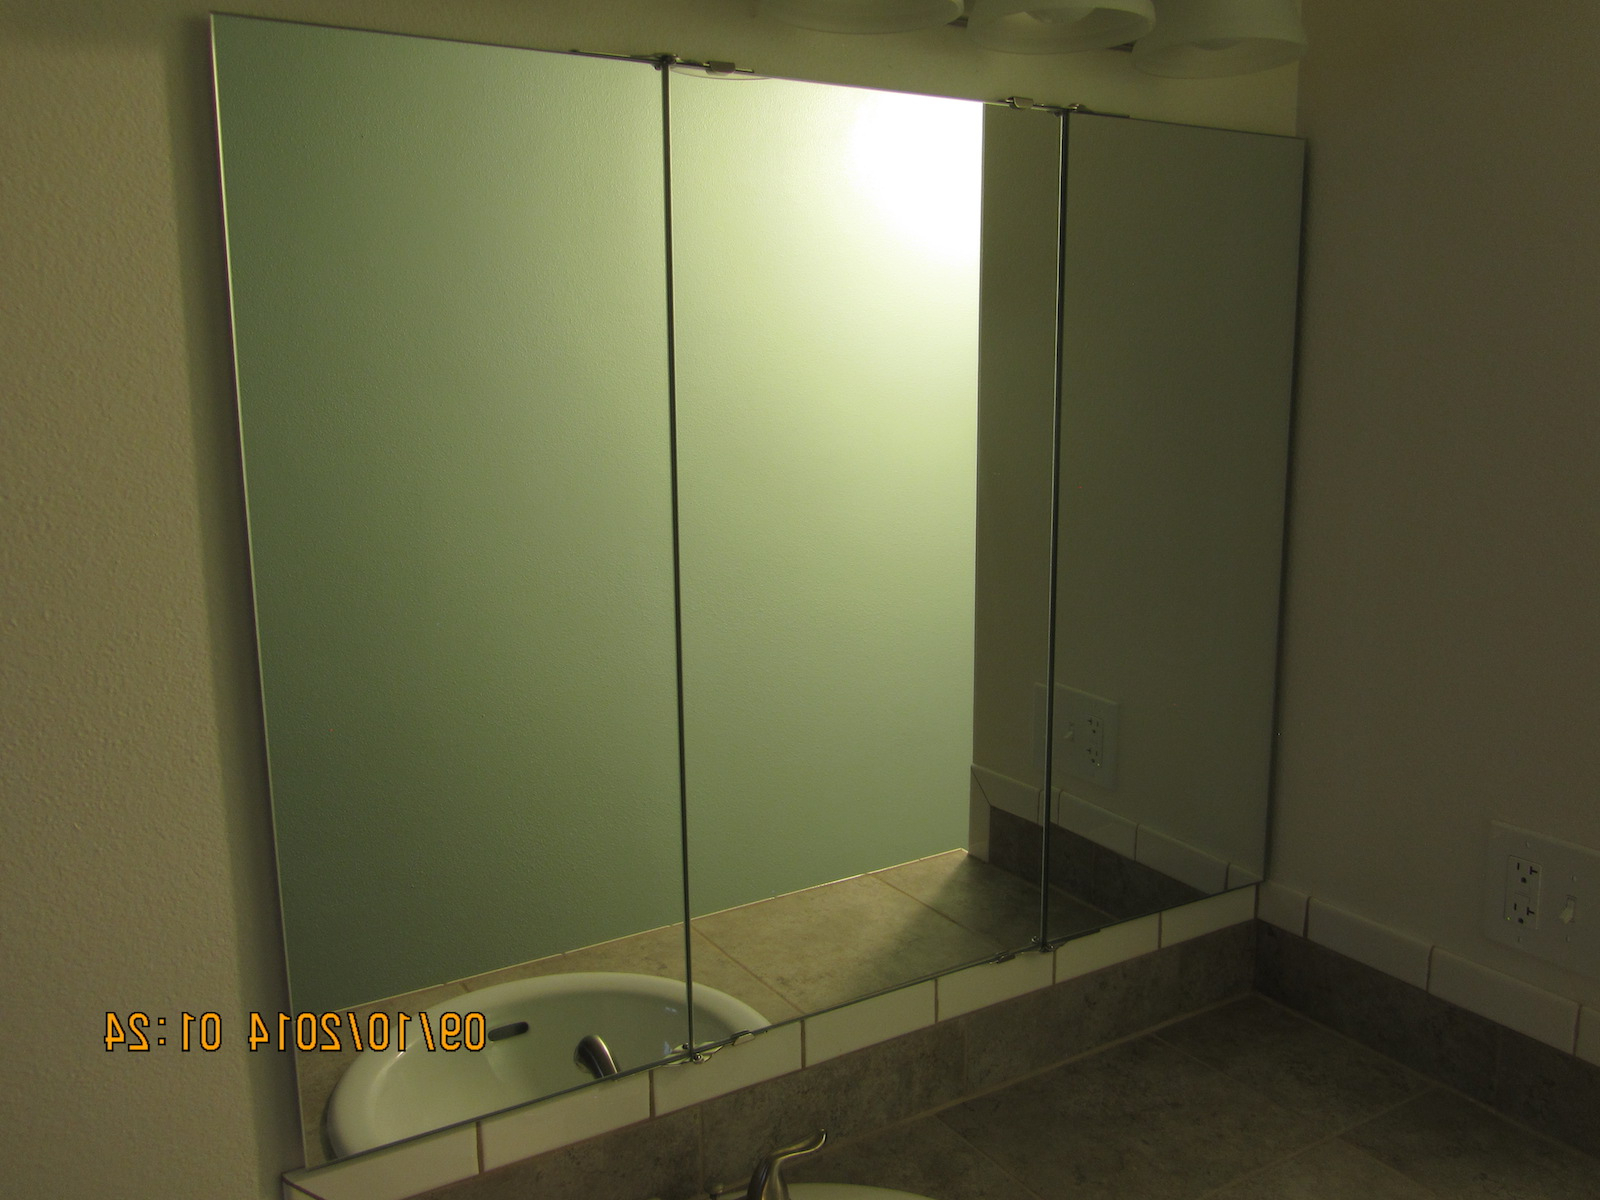 Trifold Vanity And Wardrobe Mirrors In Most Recently Released Tri Fold Bathroom Wall Mirrors (View 16 of 20)